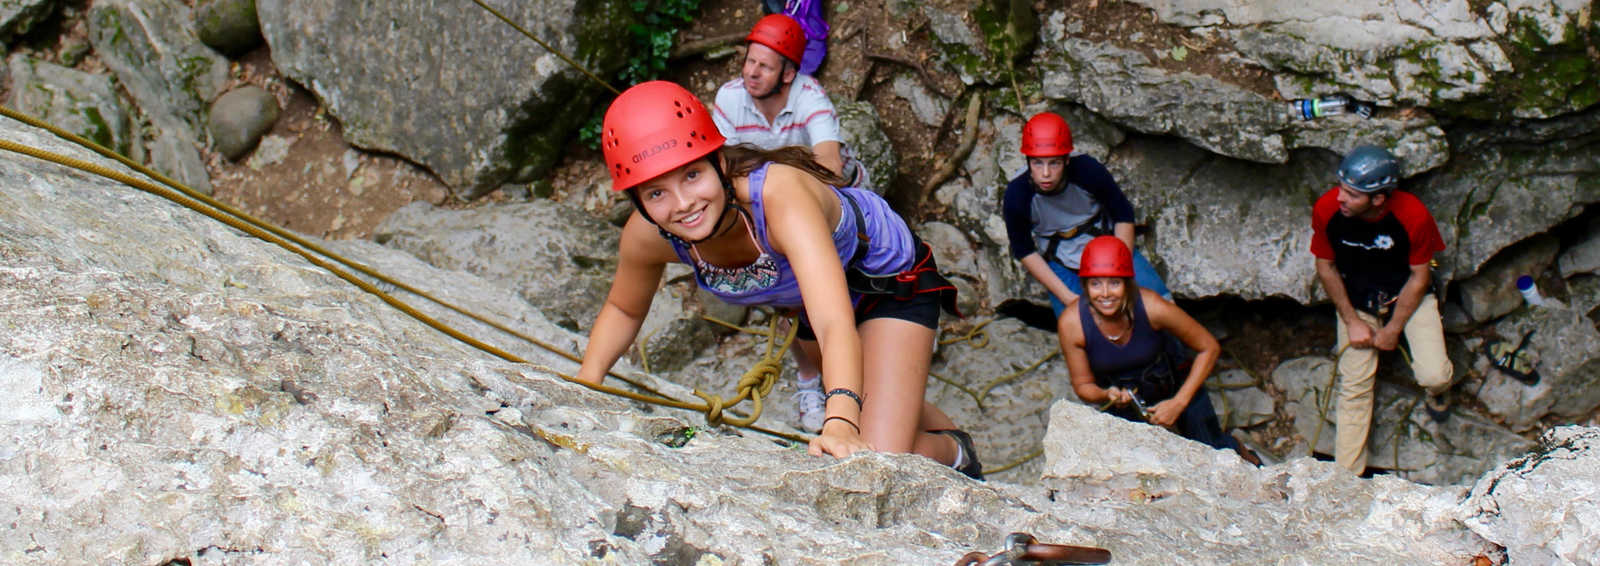 Exodus family group climbing in the Ardeche, France